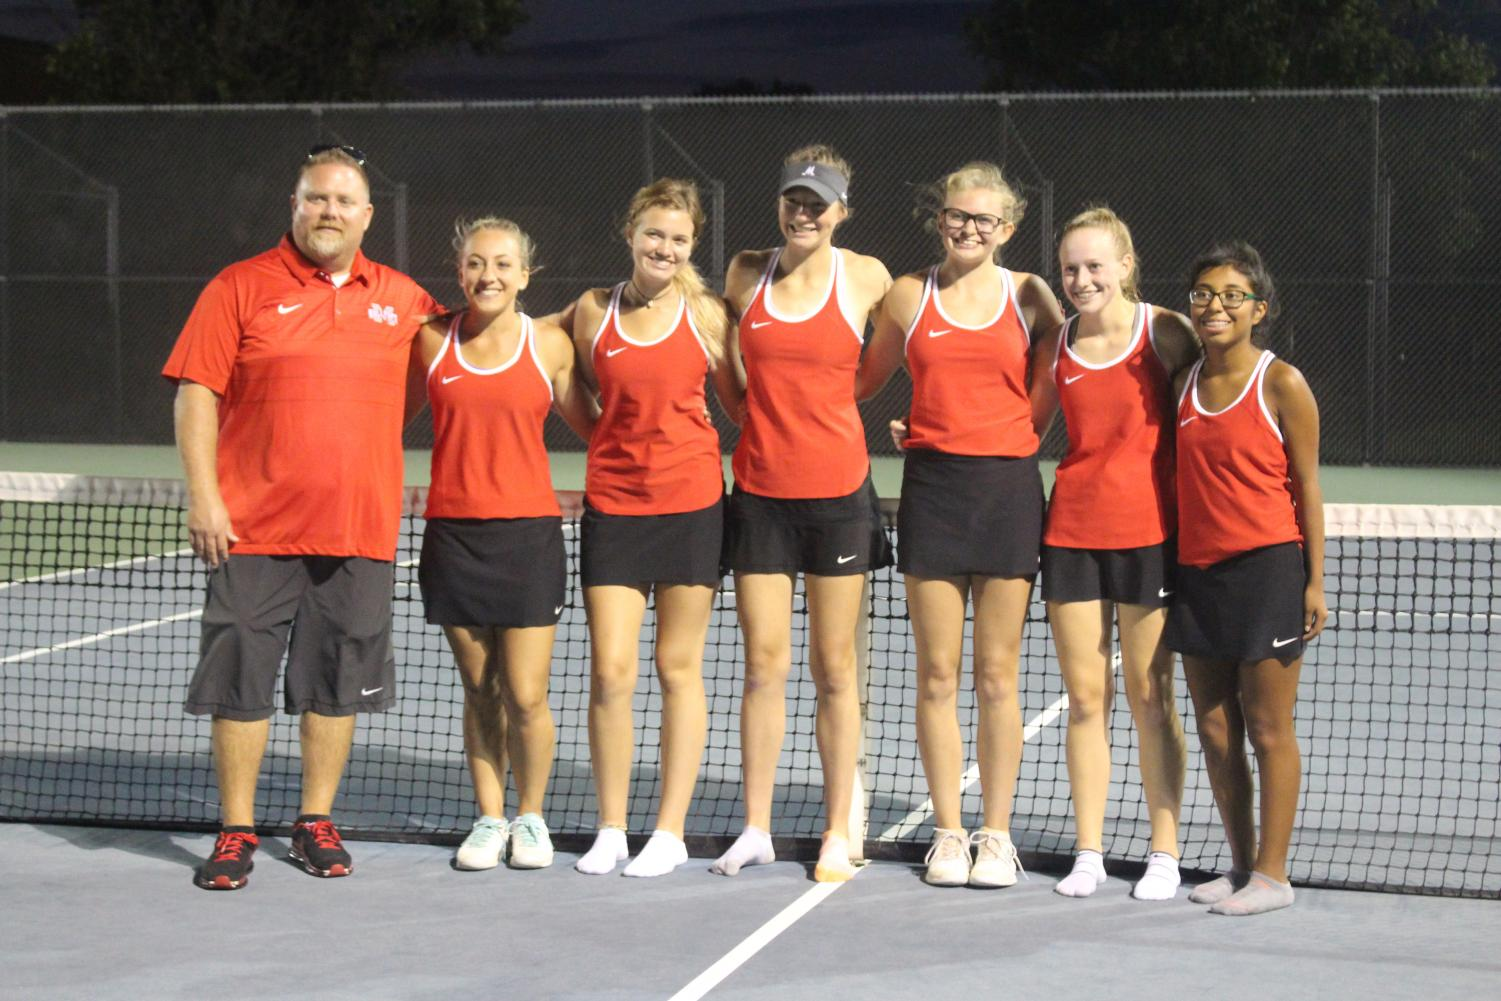 McPherson Varsity Tennis Left to Right :: Coach Brown, Ashley Achilles, CeAnna Allen, Taylor Bruce, Rachel Carlson, Carley Malm, Patty Huerta